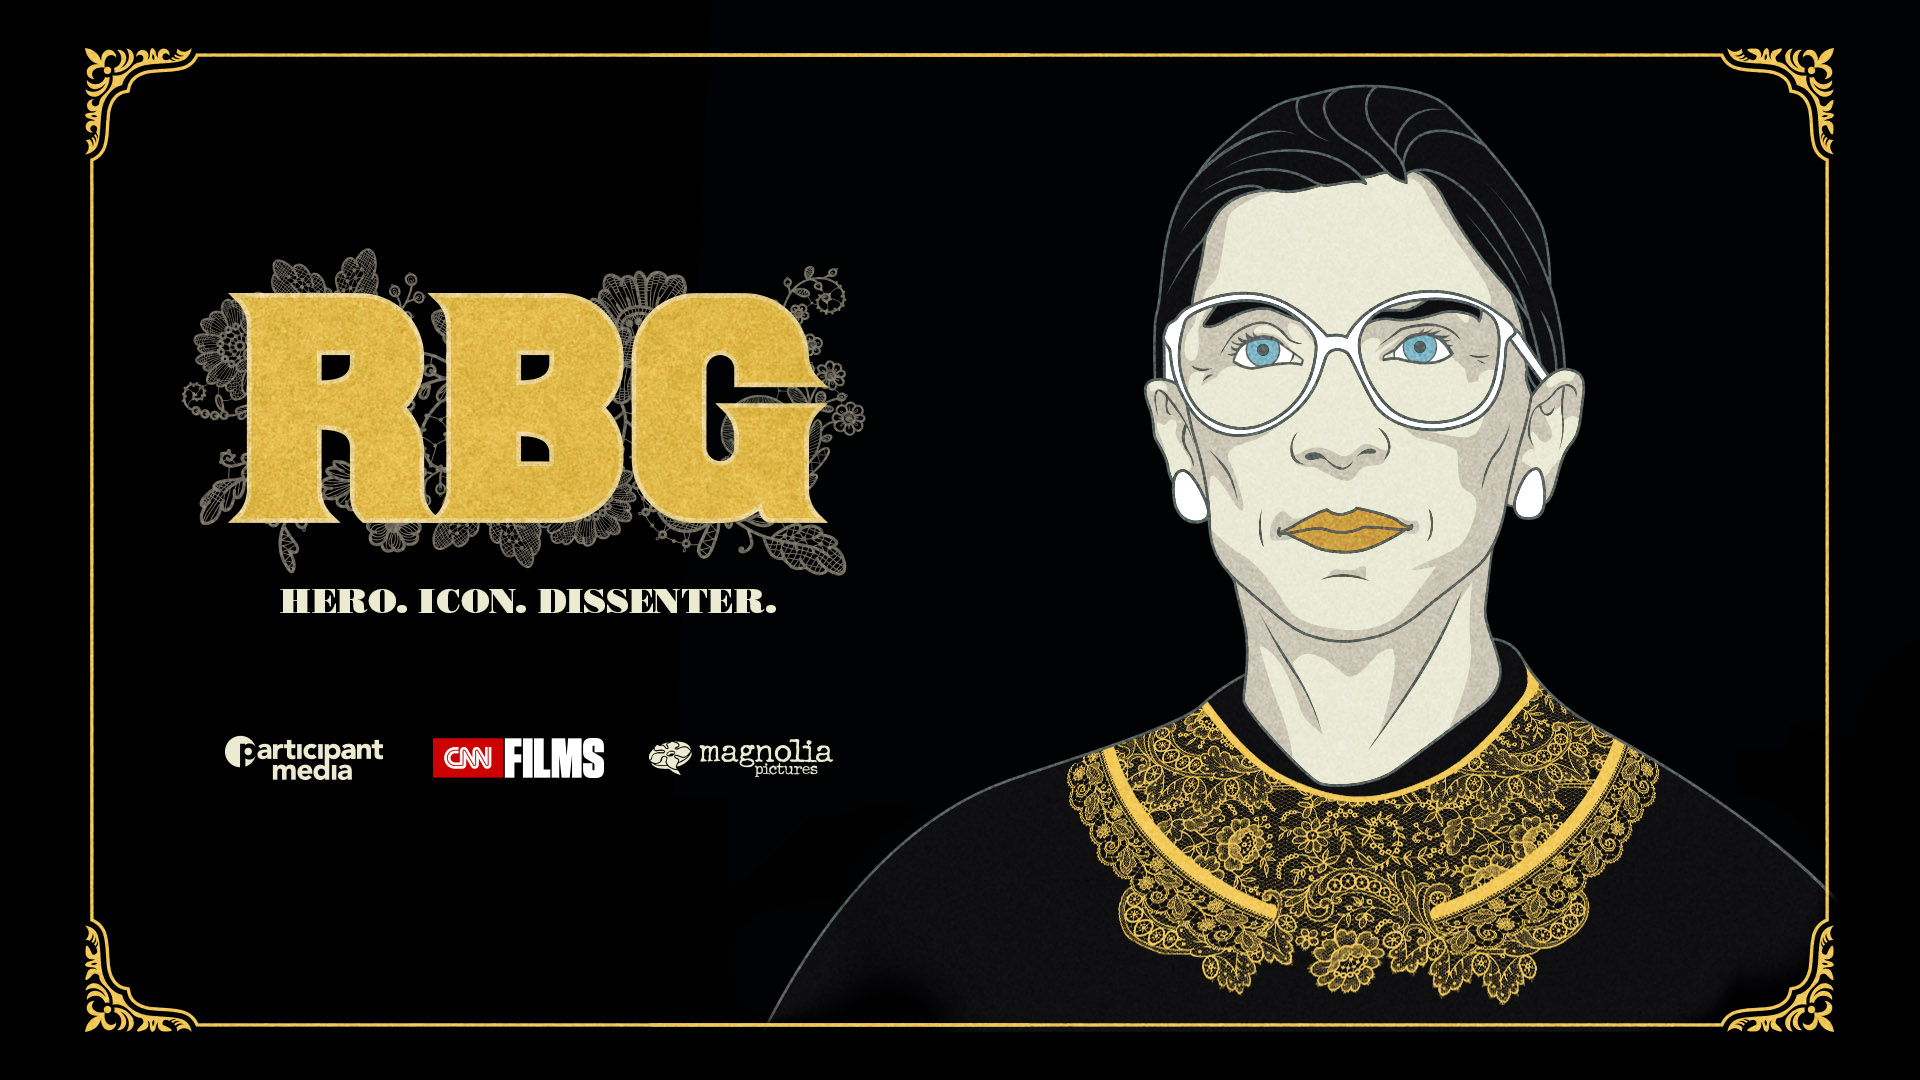 cnn films sets north american 'rbg' broadcast premiere for monday